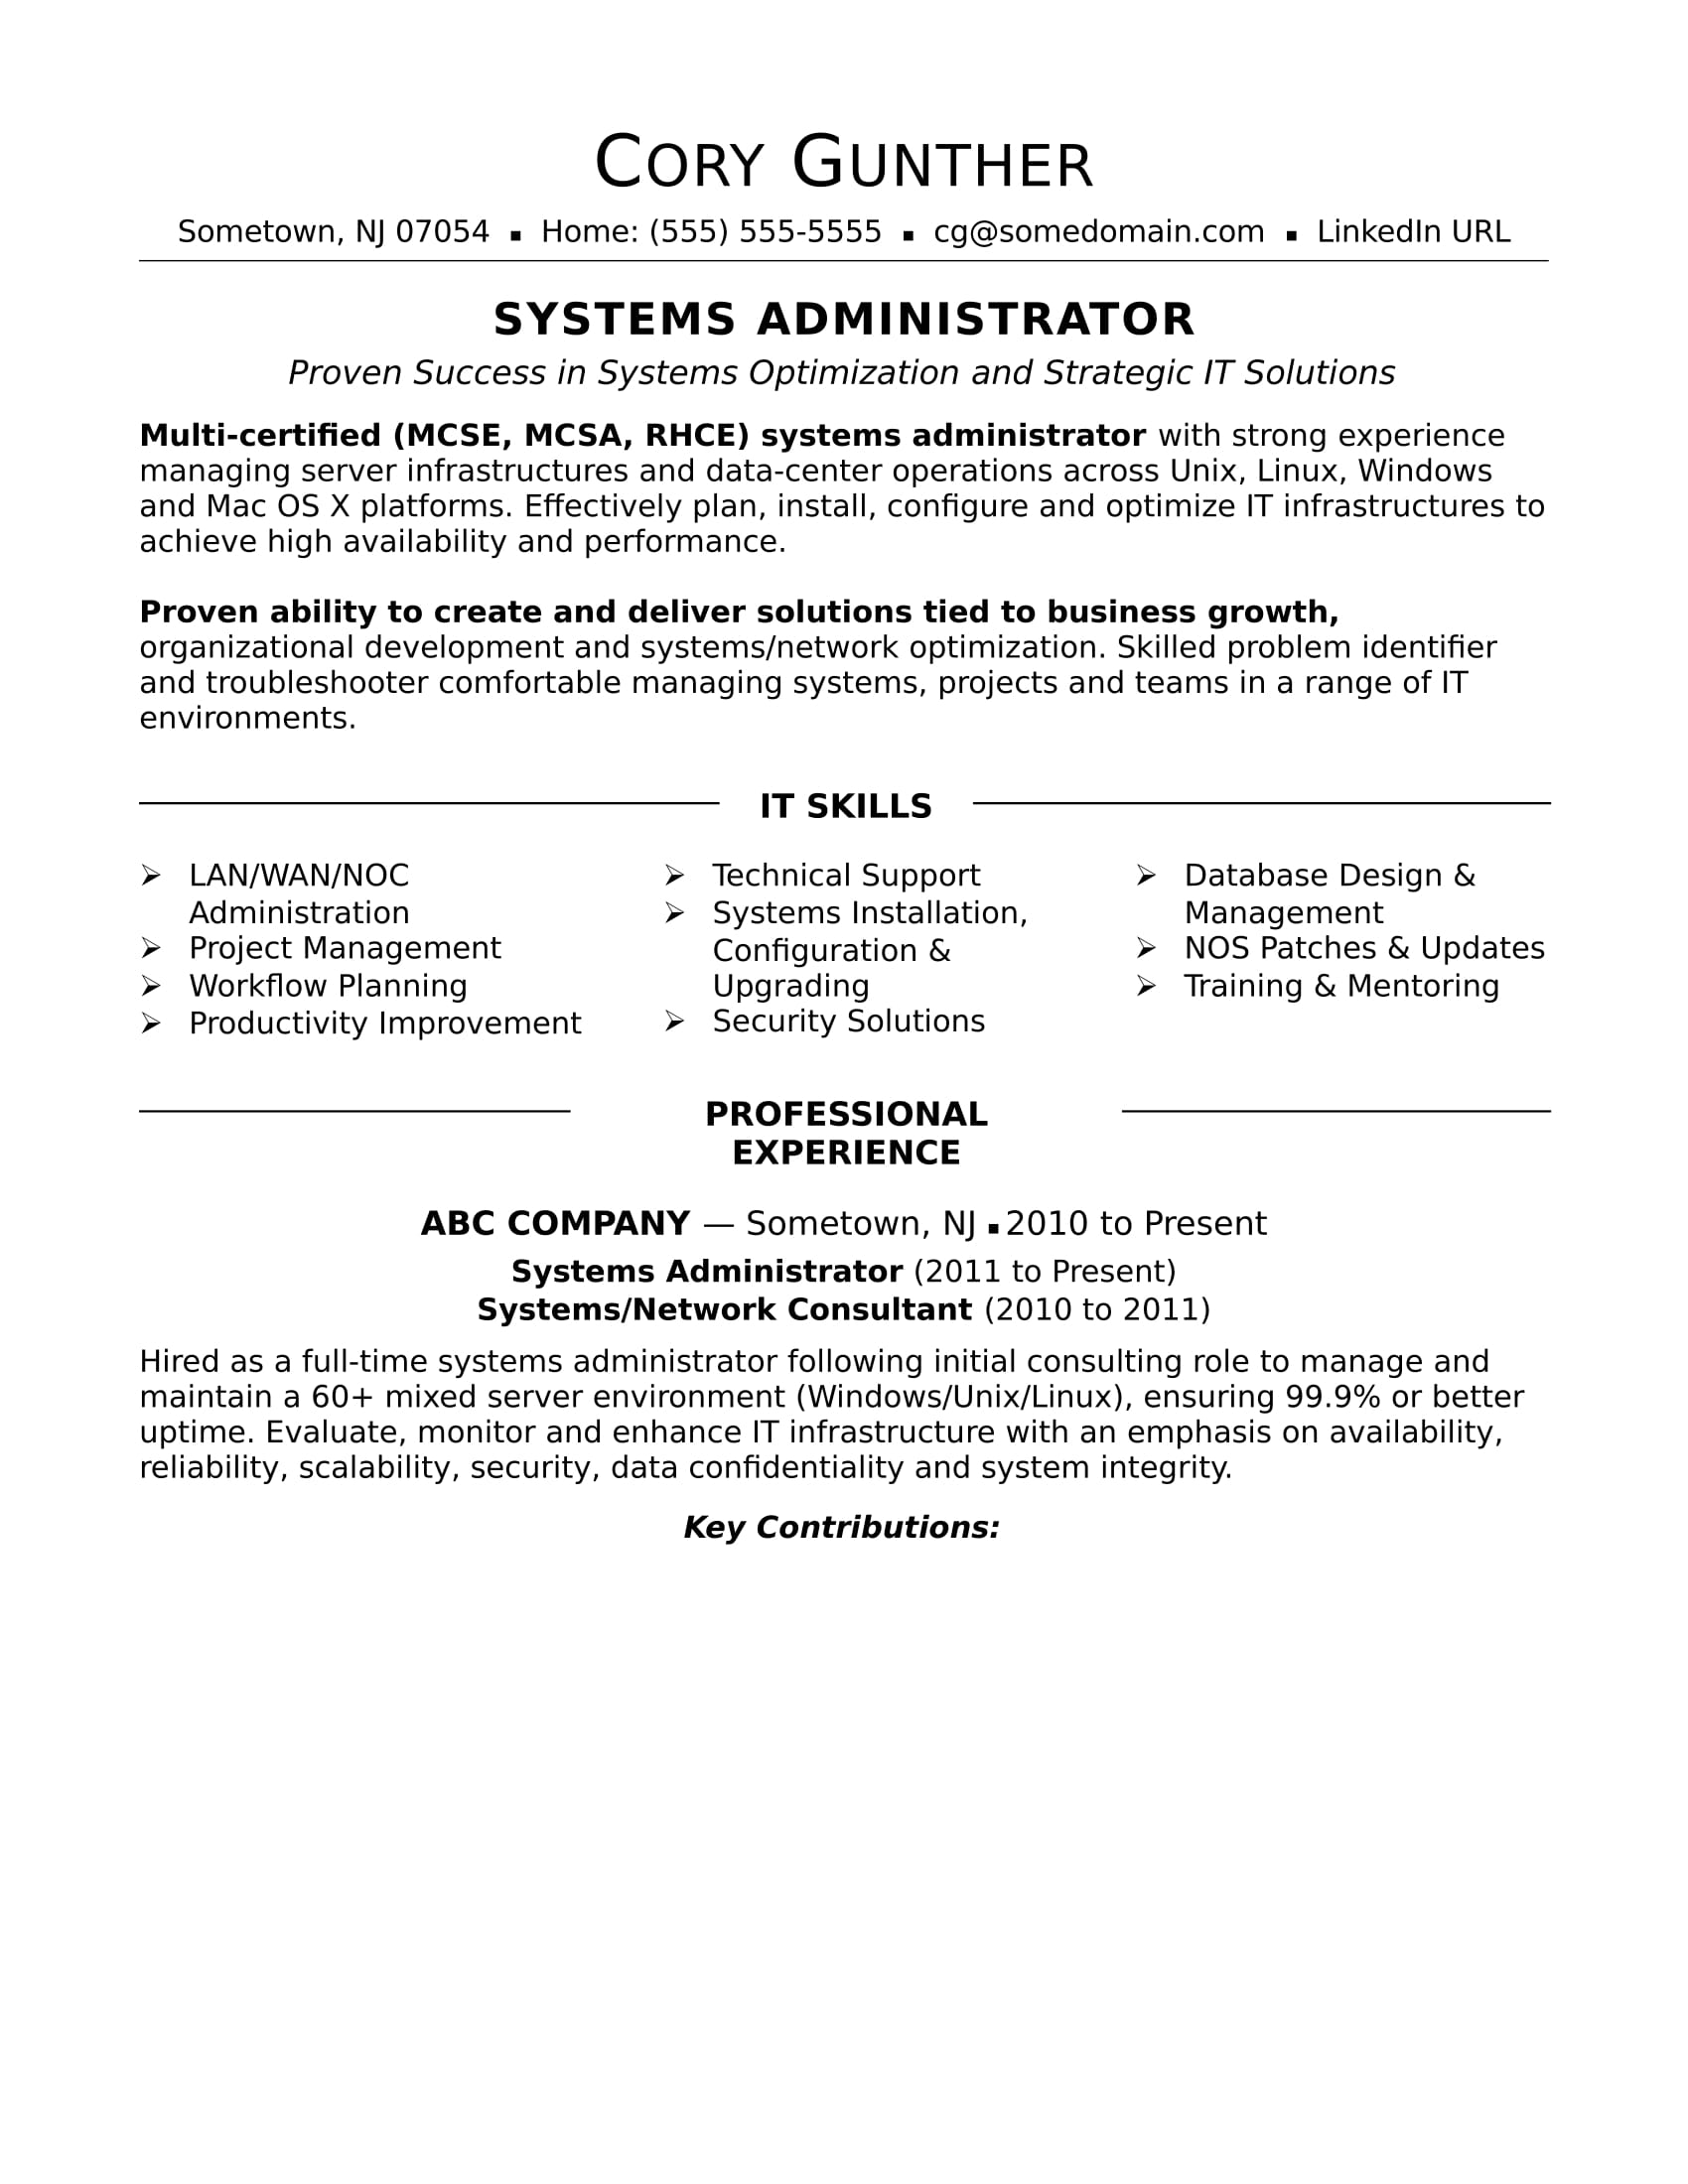 resume Resume Optimization sample resume for an experienced systems administrator monster com administrator